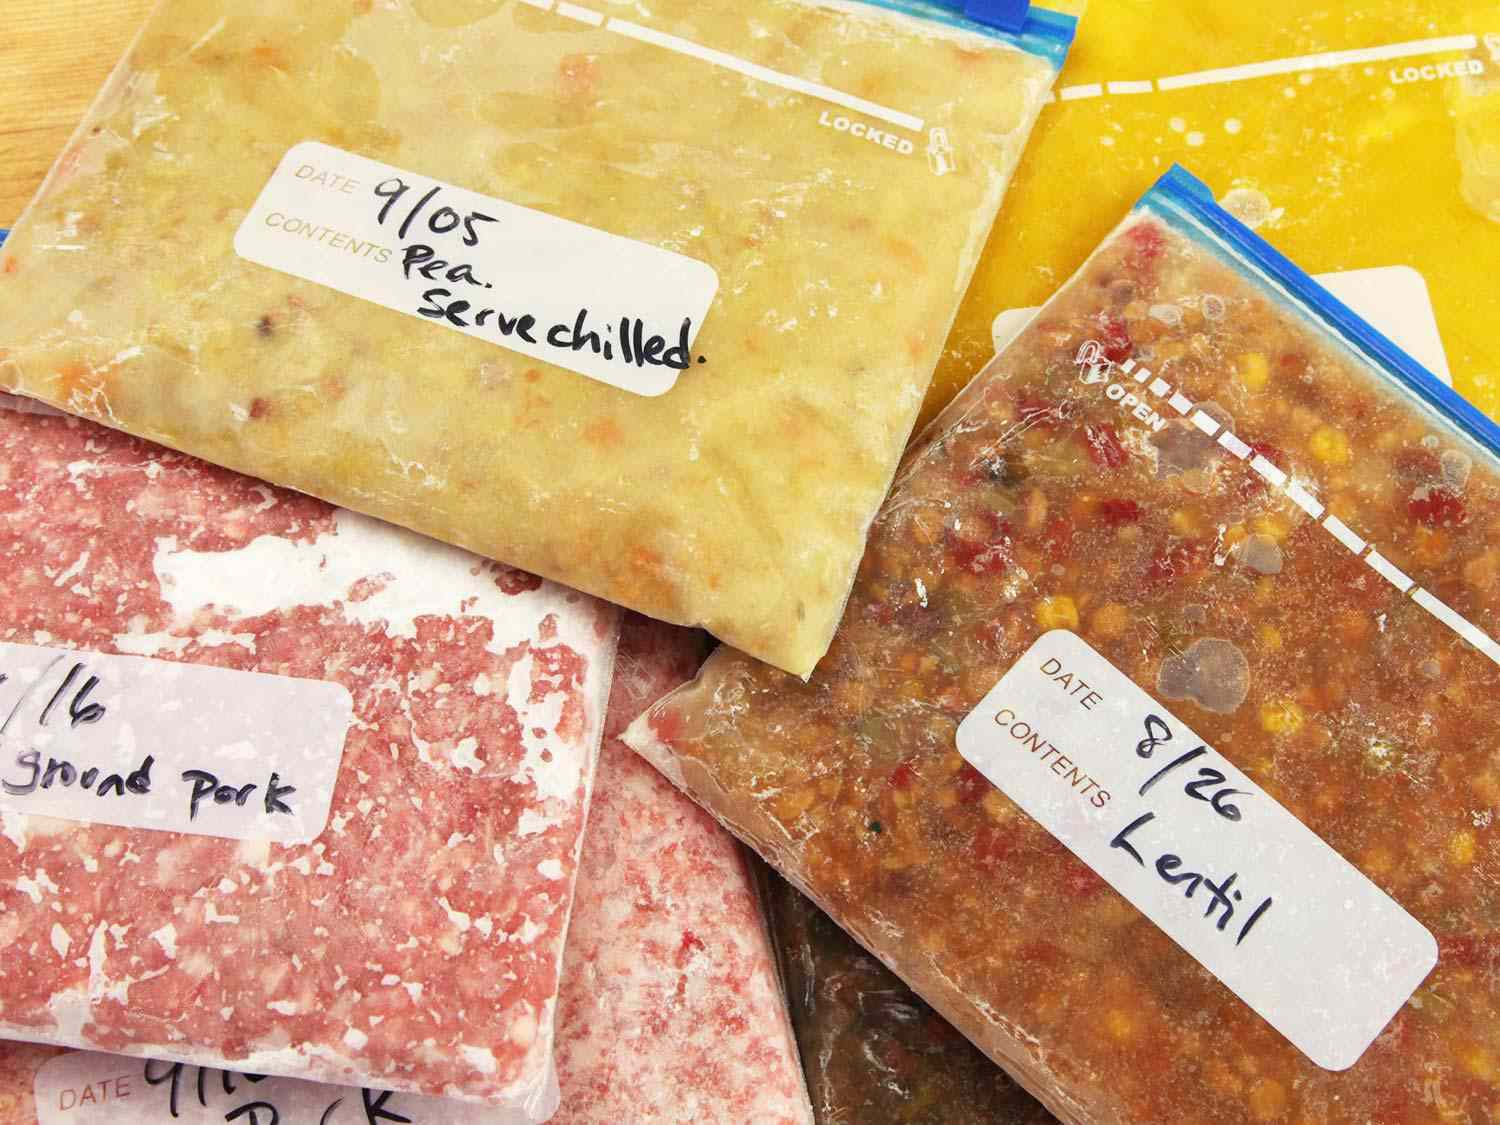 Various food items frozen flat in labeled, dated zipper-lock bags, including ground pork, lentil soup, and pea soup